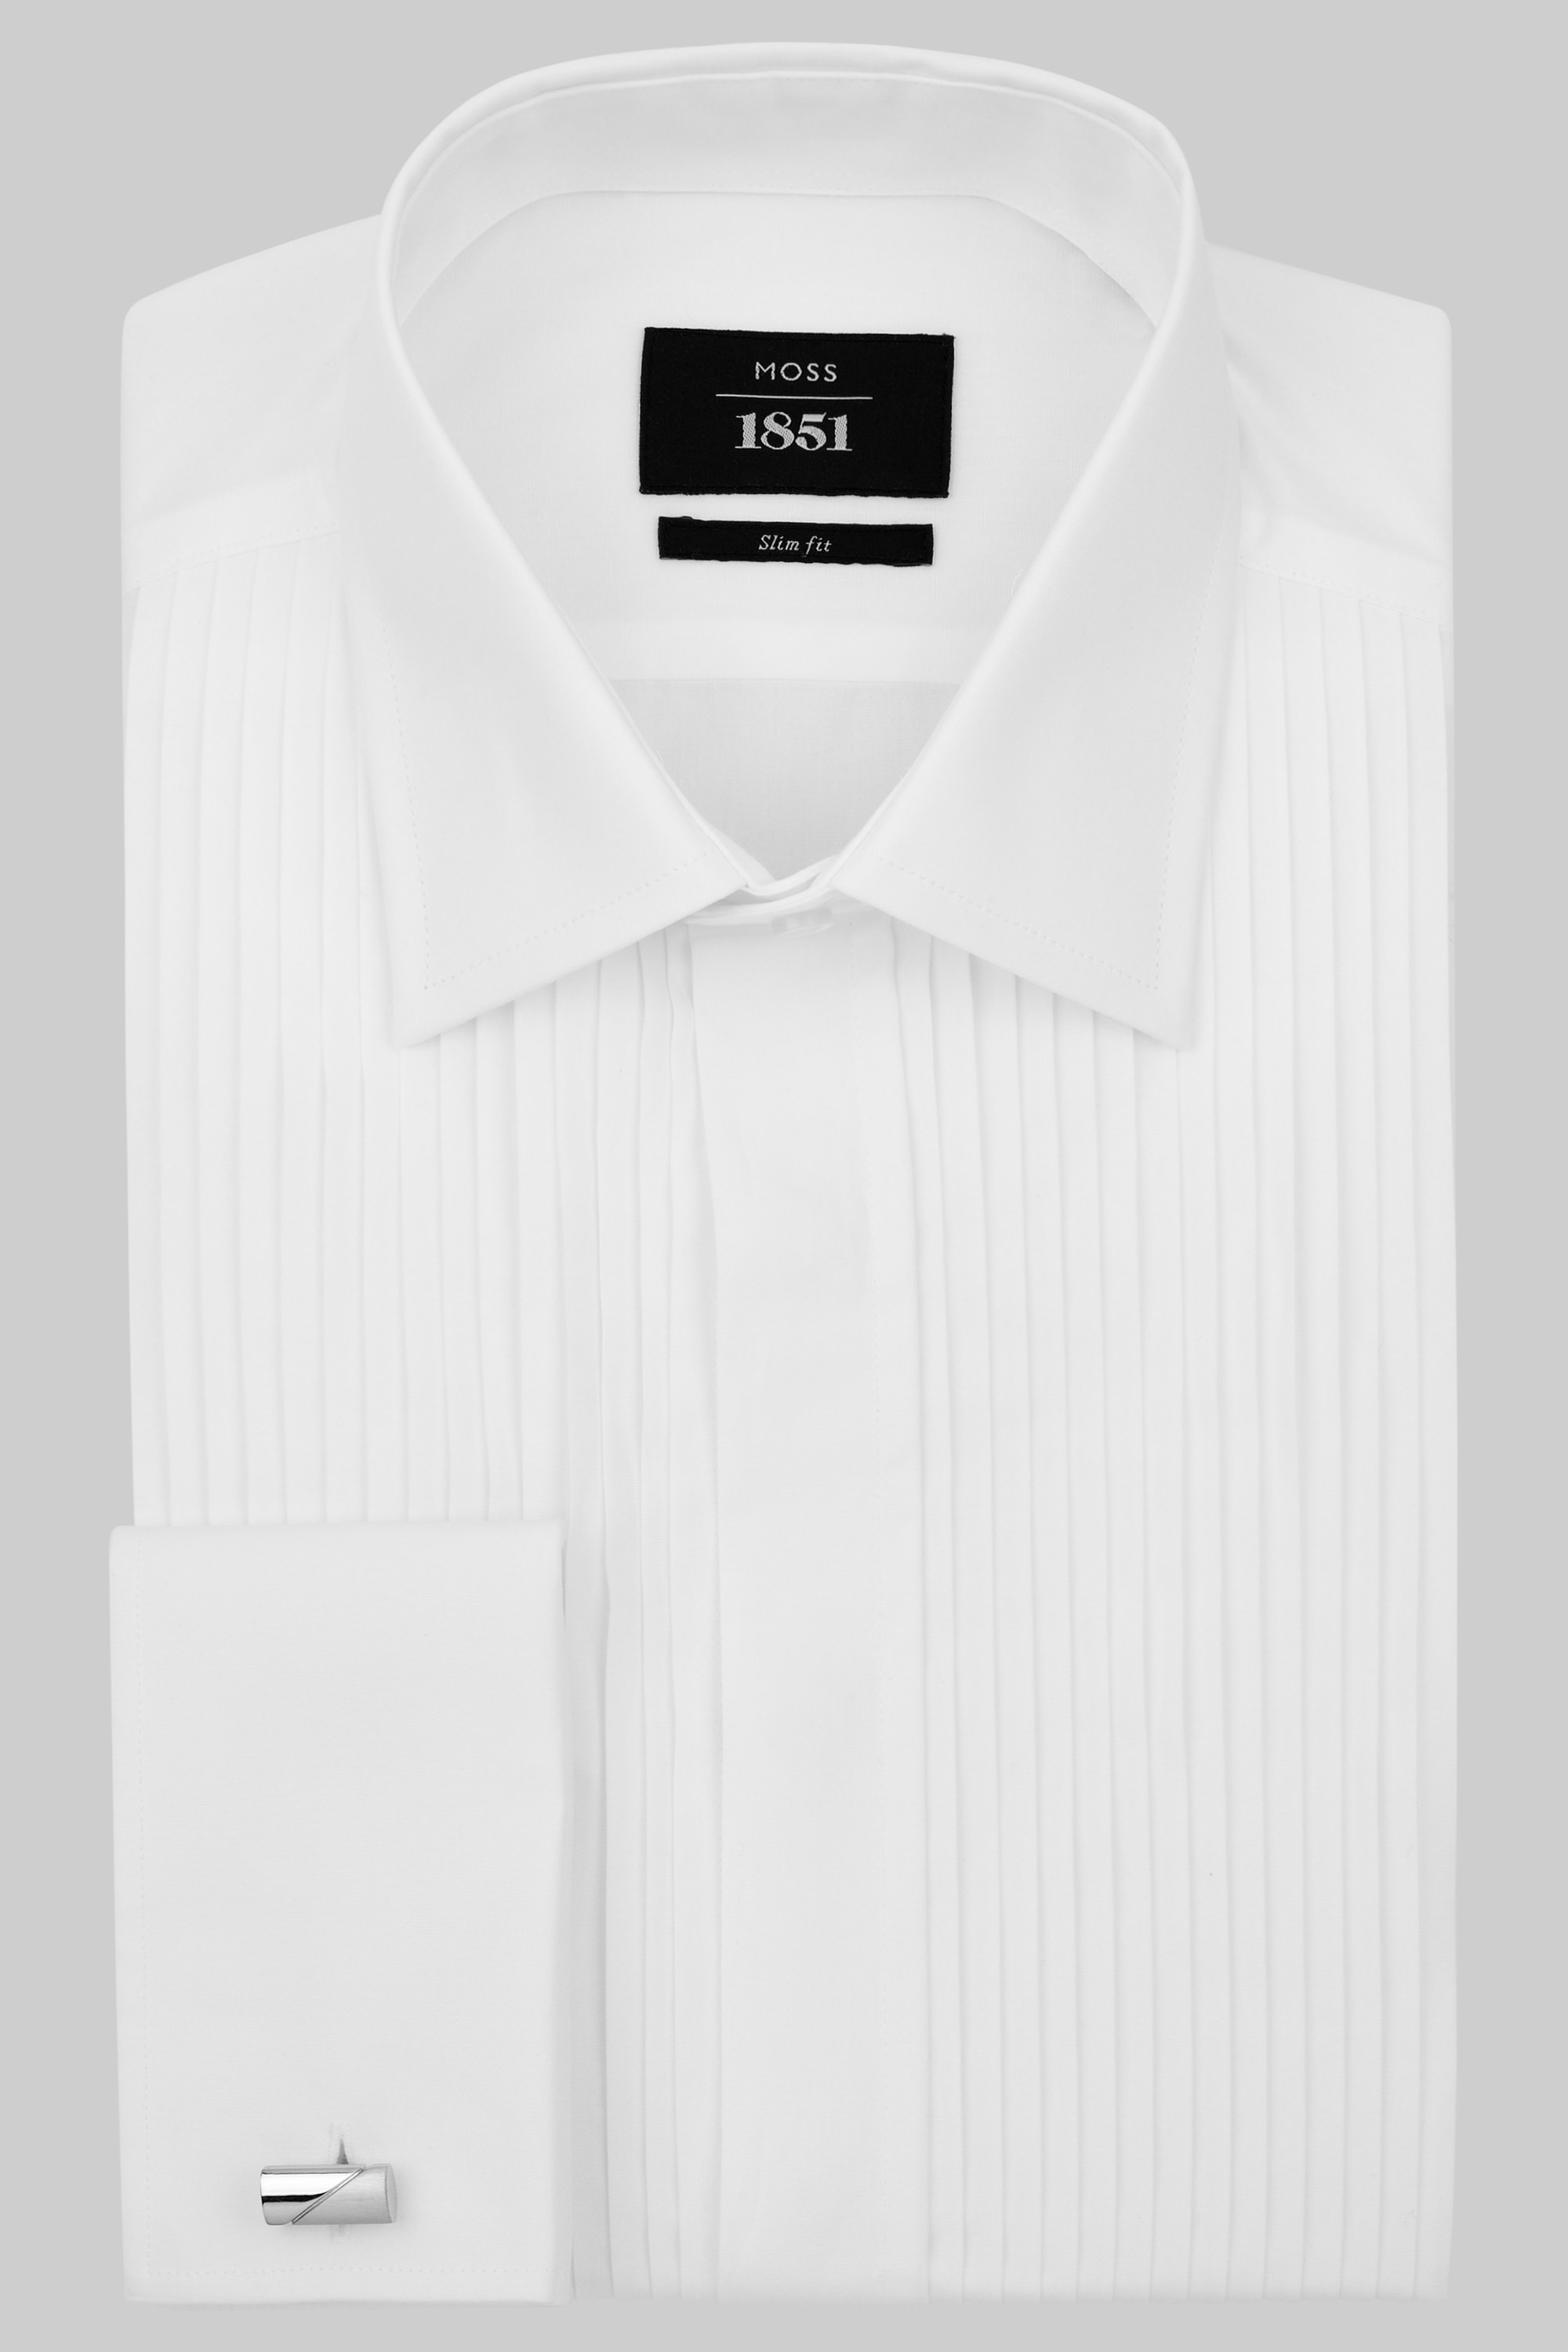 Moss Bros Moss 1851 Slim Fit Classic Collar Pleated White Dress Shirt